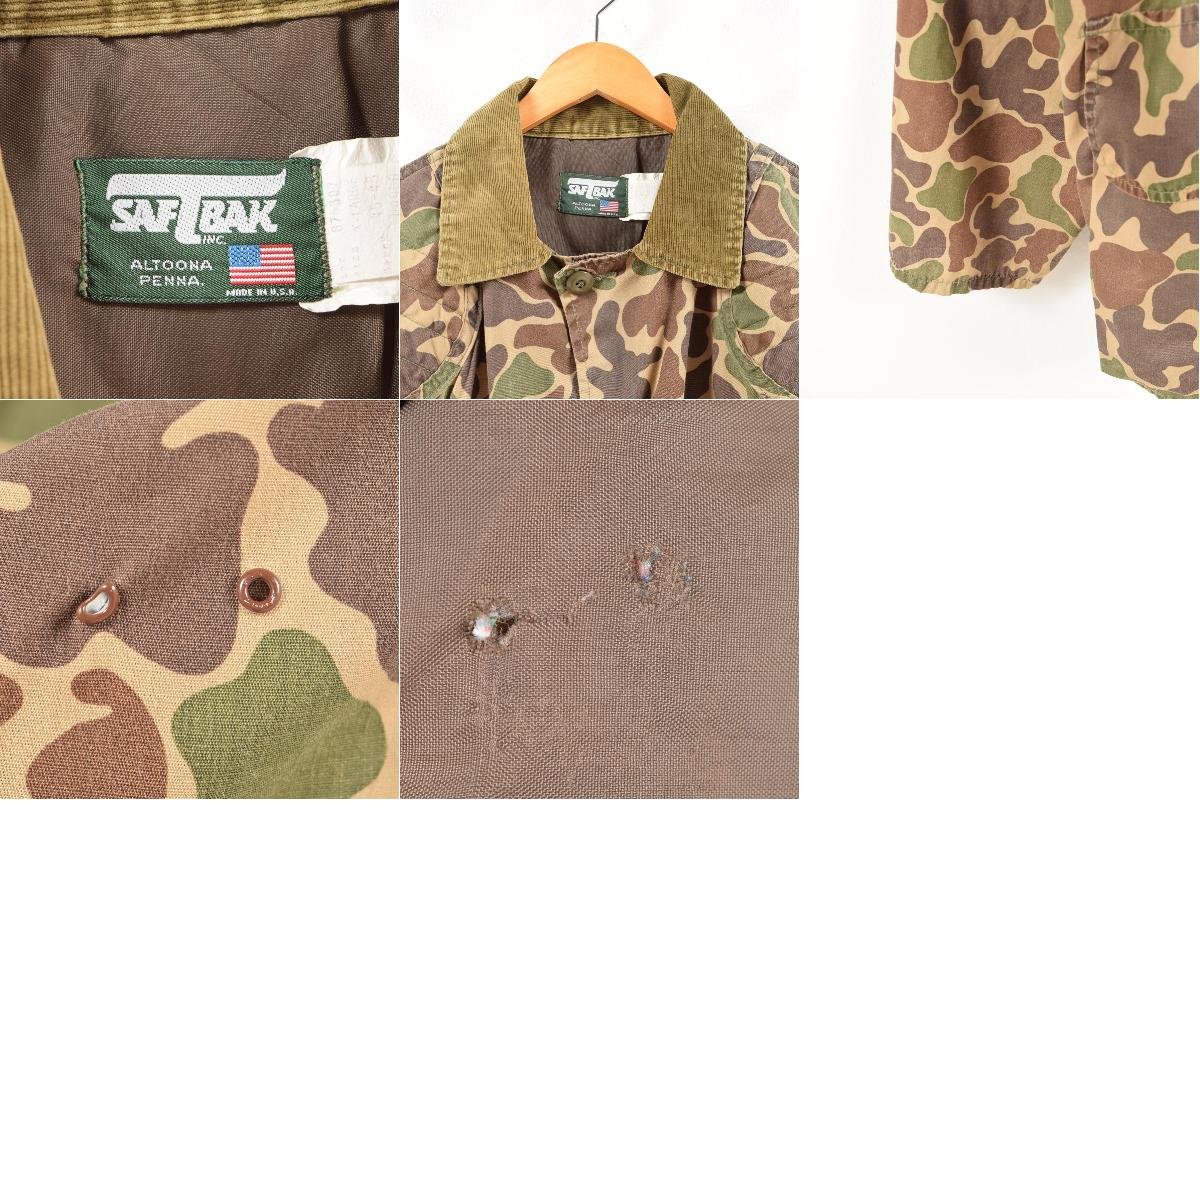 508ea568a1371 ... Men XL vintage /wal1438 in the 80s made in SAFTBAK duck hunter duck  camouflage hunting